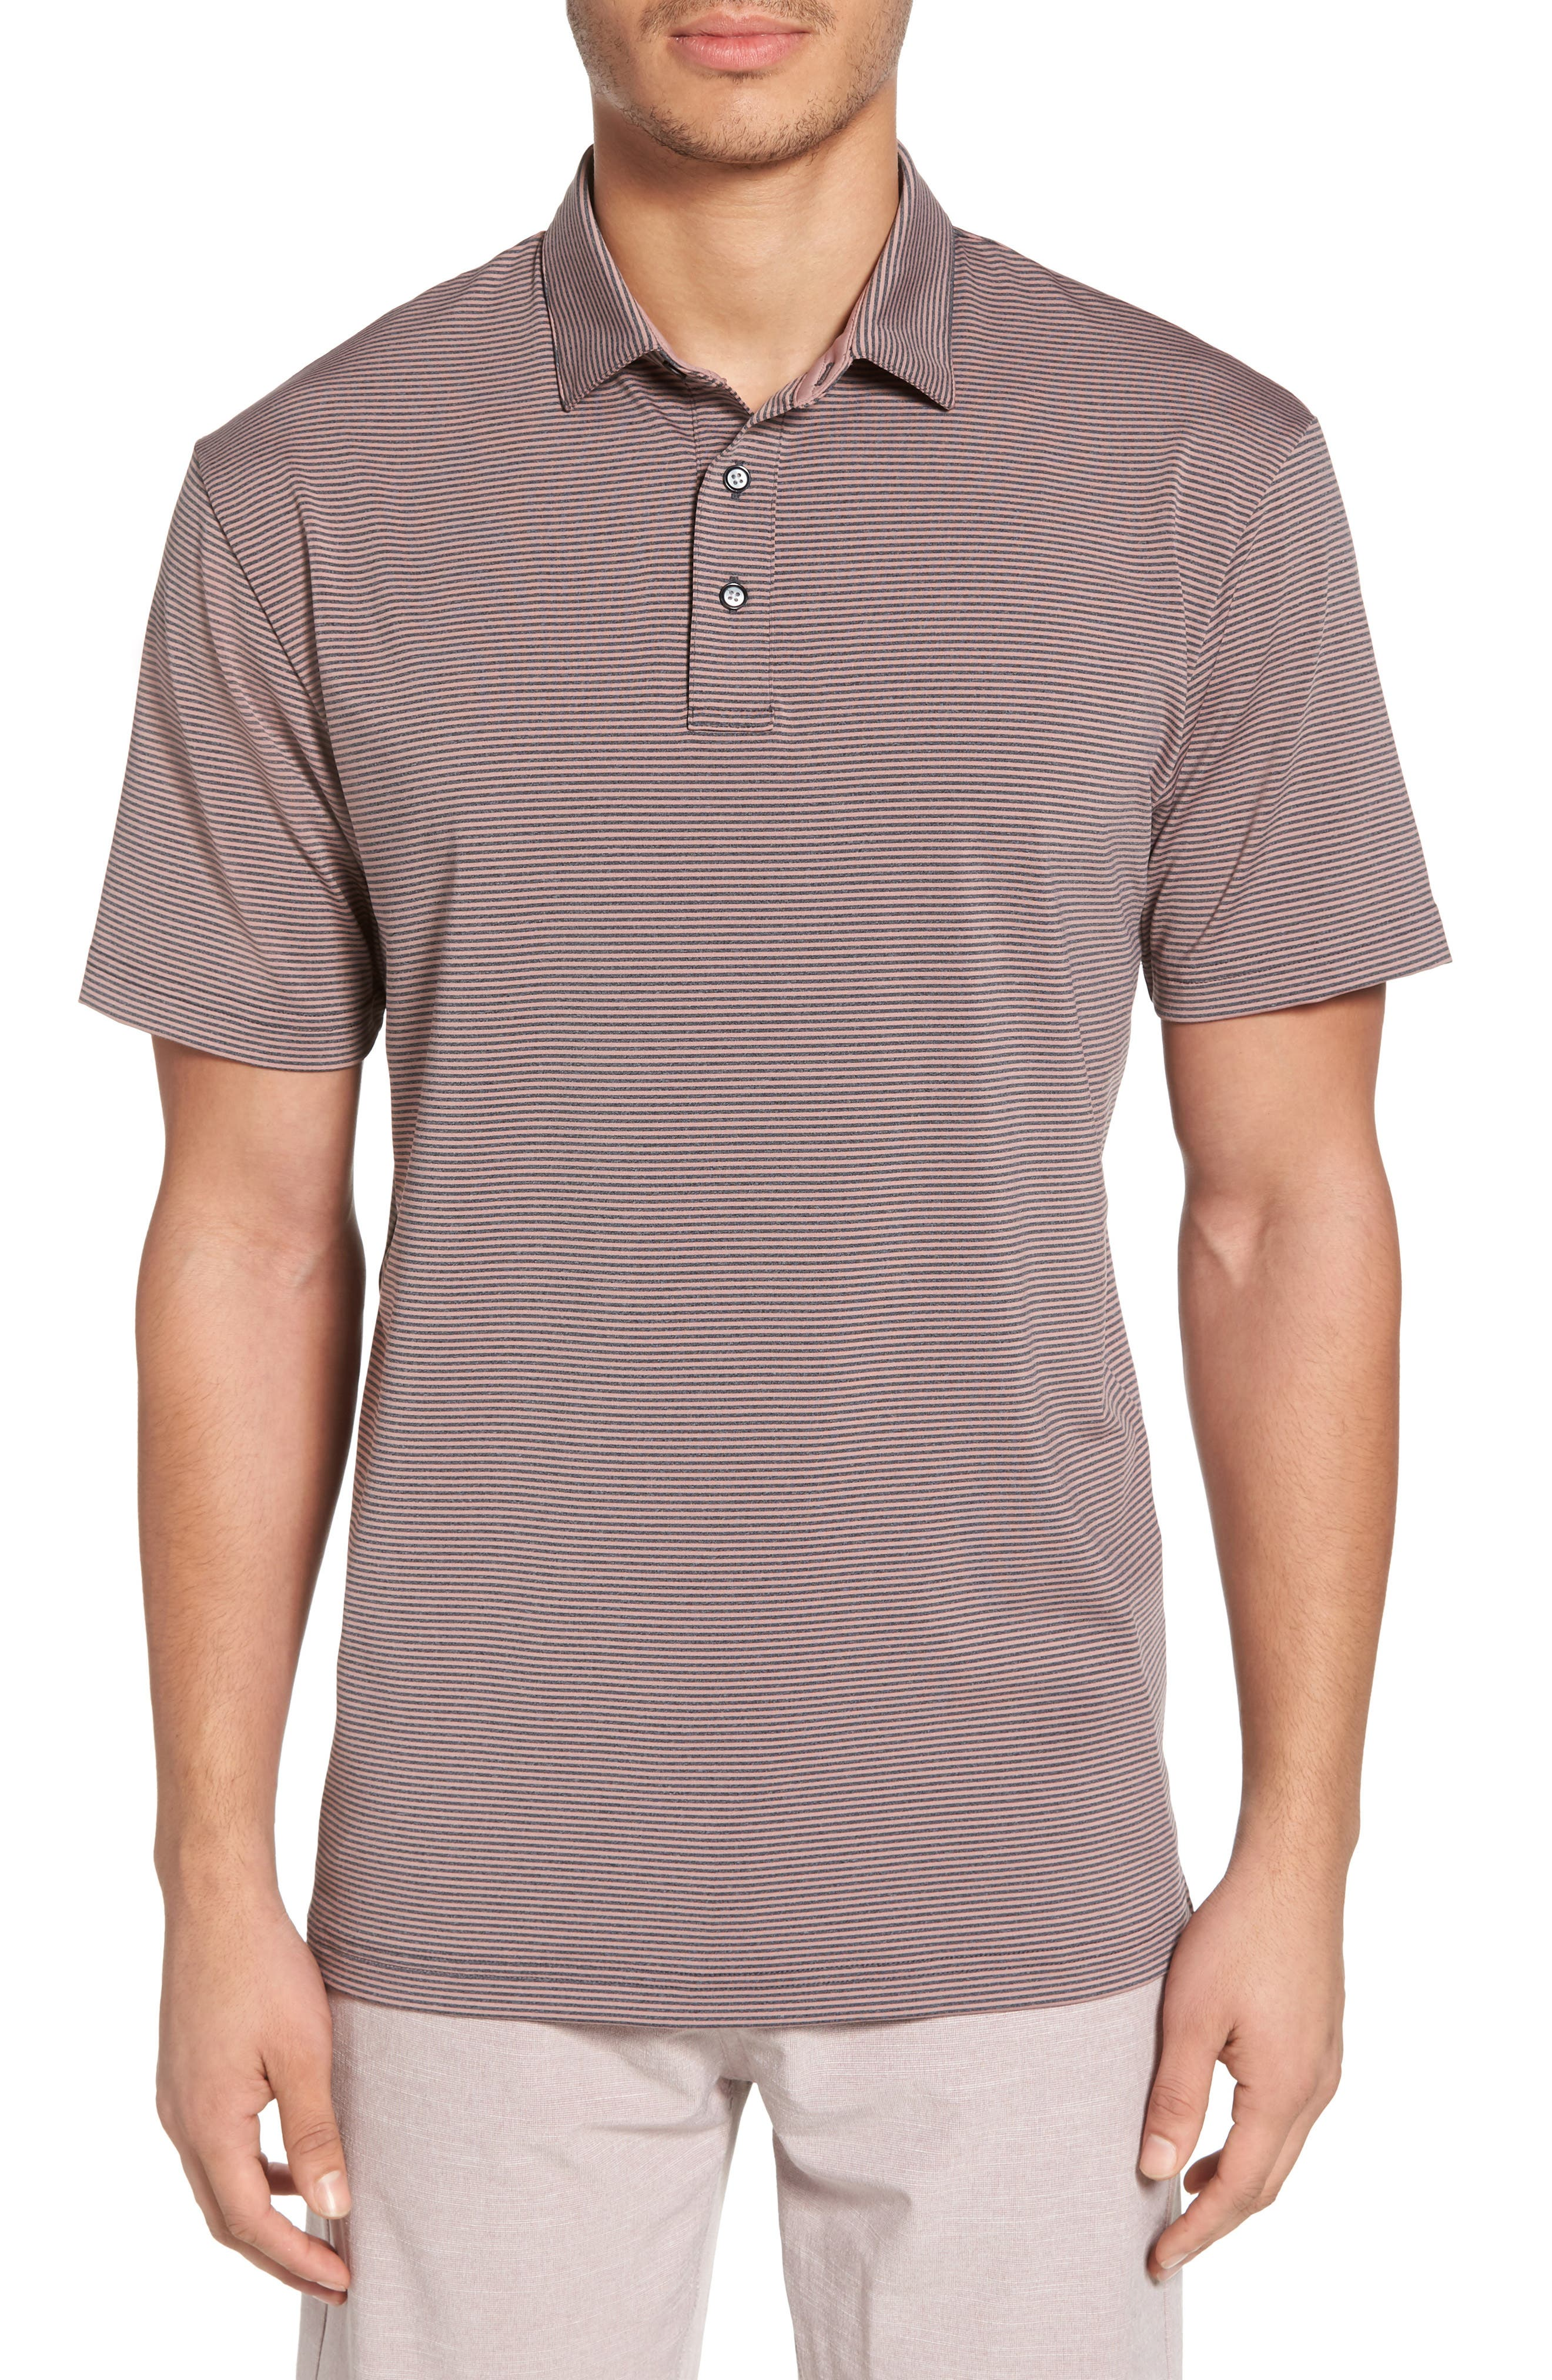 Devereux Oracle Stripe Jersey Polo